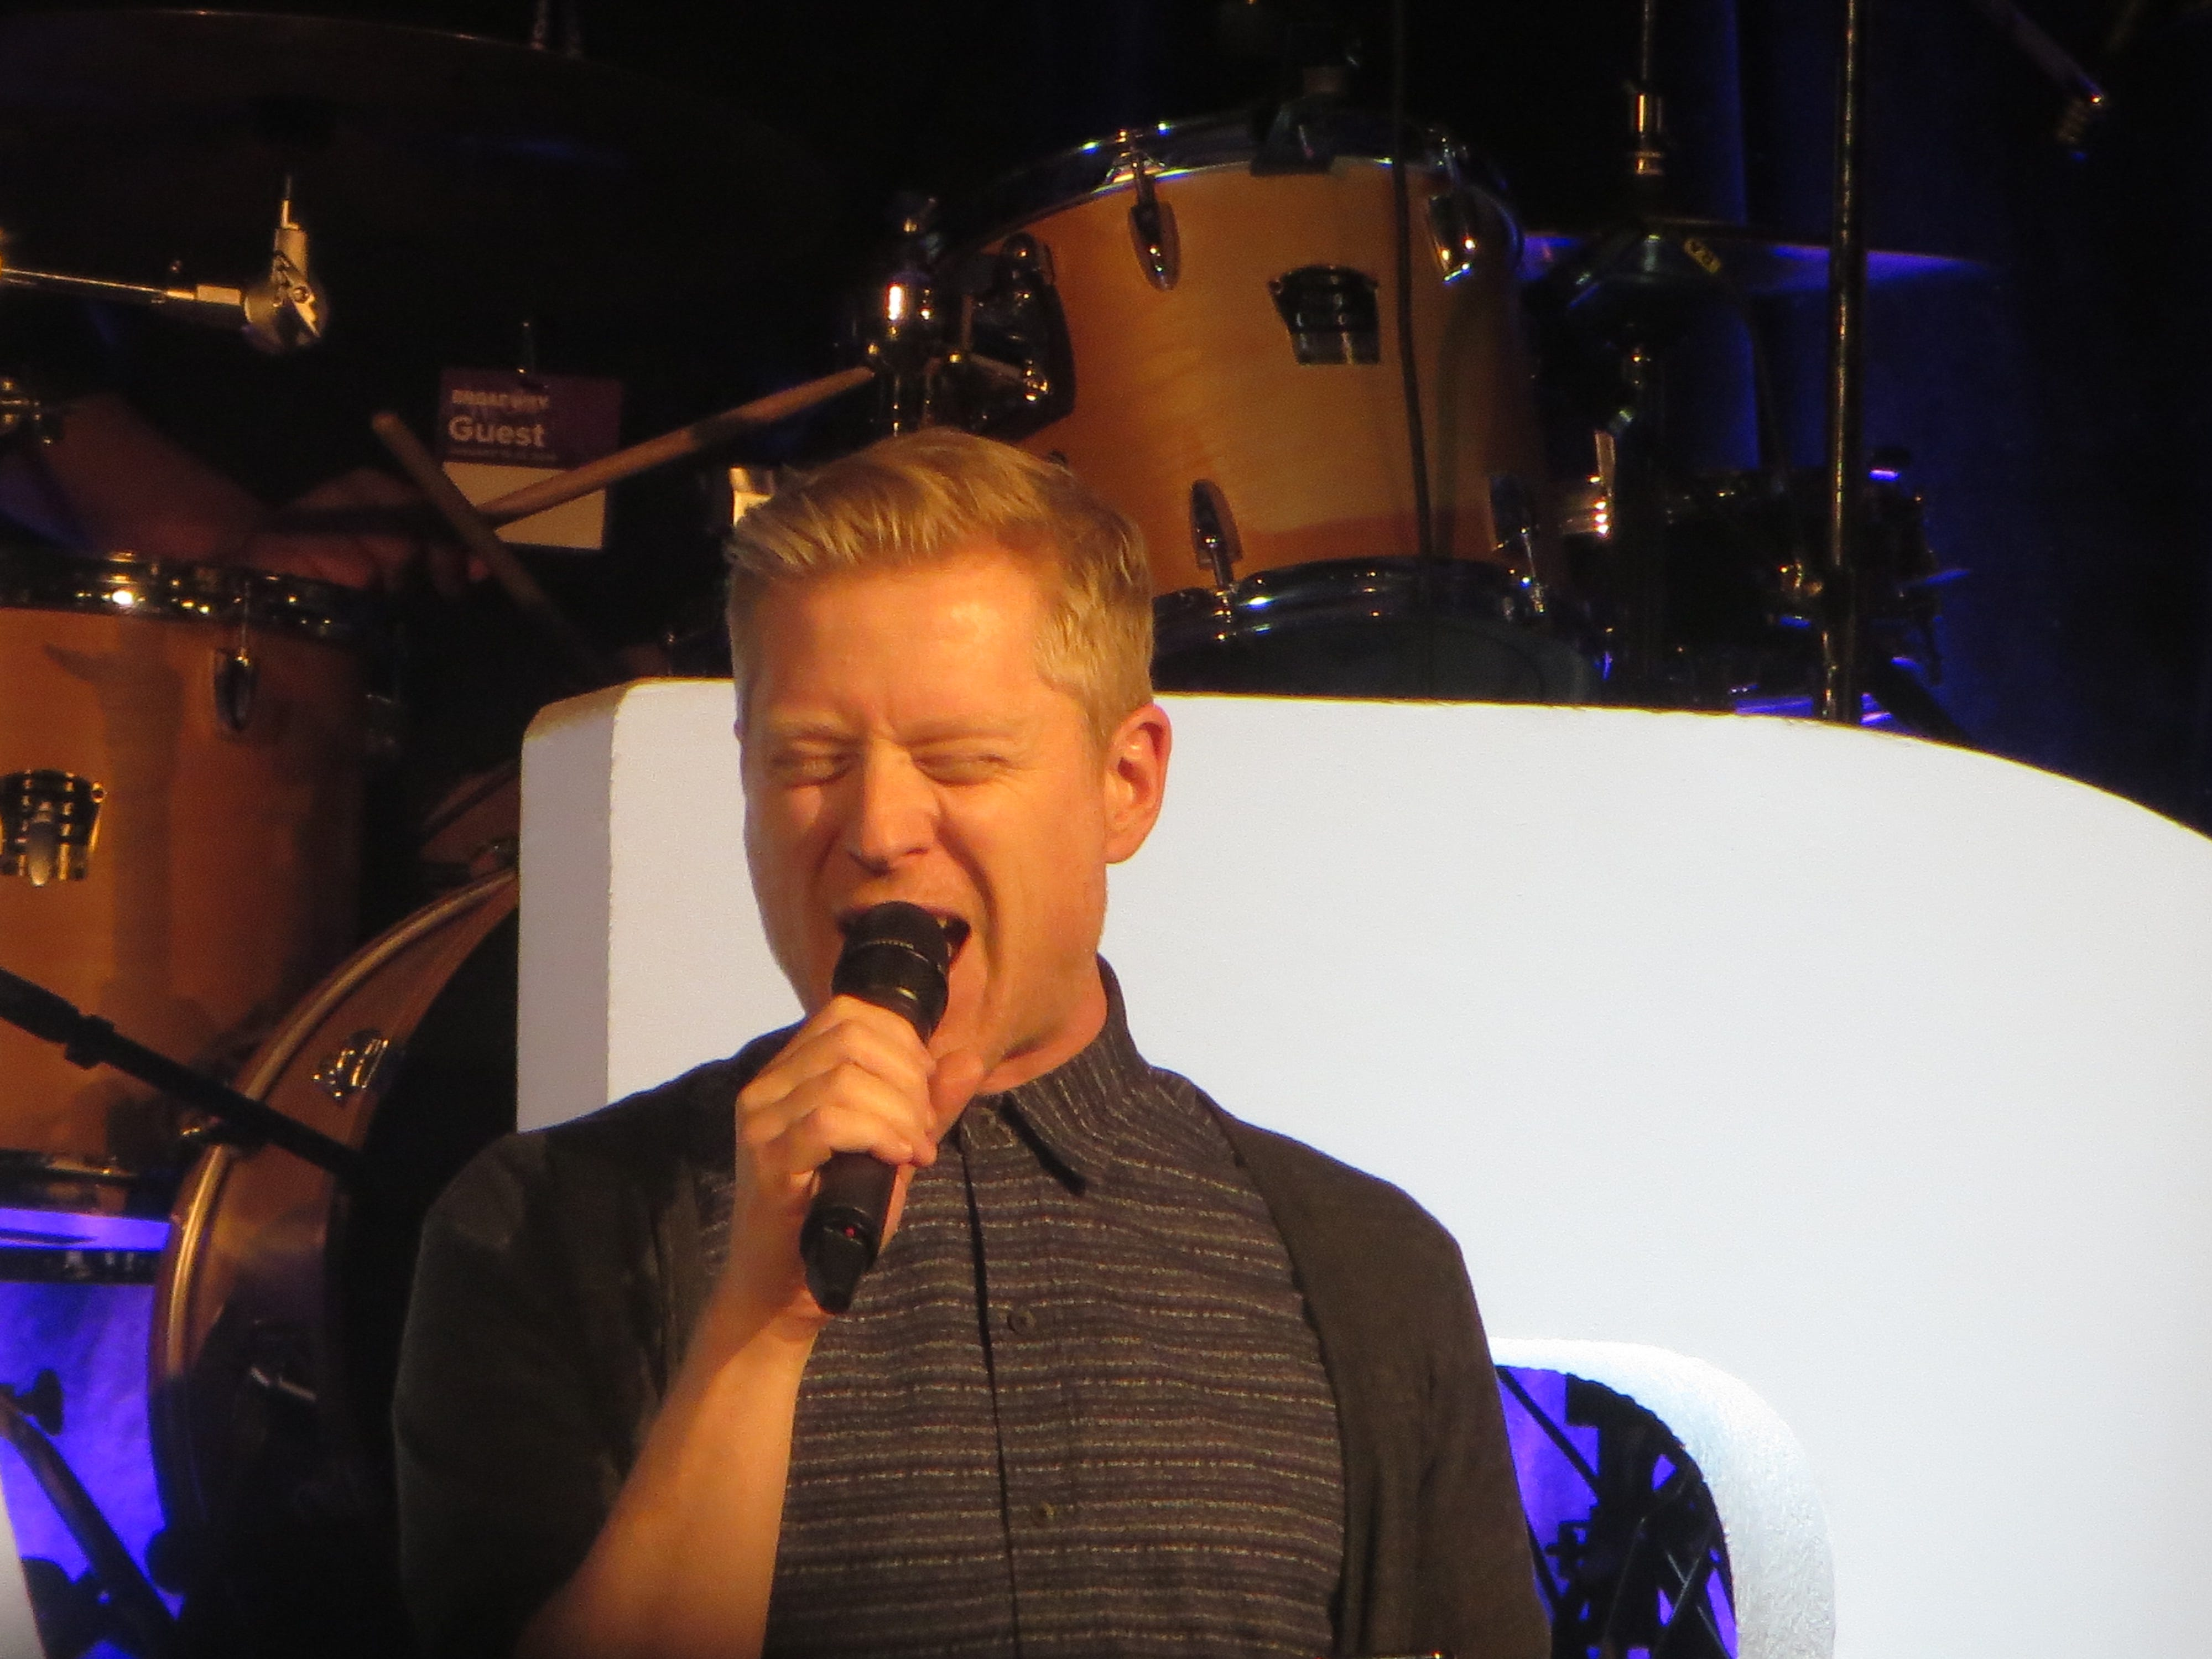 Anthony Rapp performs at BroadwayCon Jukebox at BroadwayCon 2019, held Jan. 11 to 13, 2019, at the New York Hilton Midtown in Manhattan.